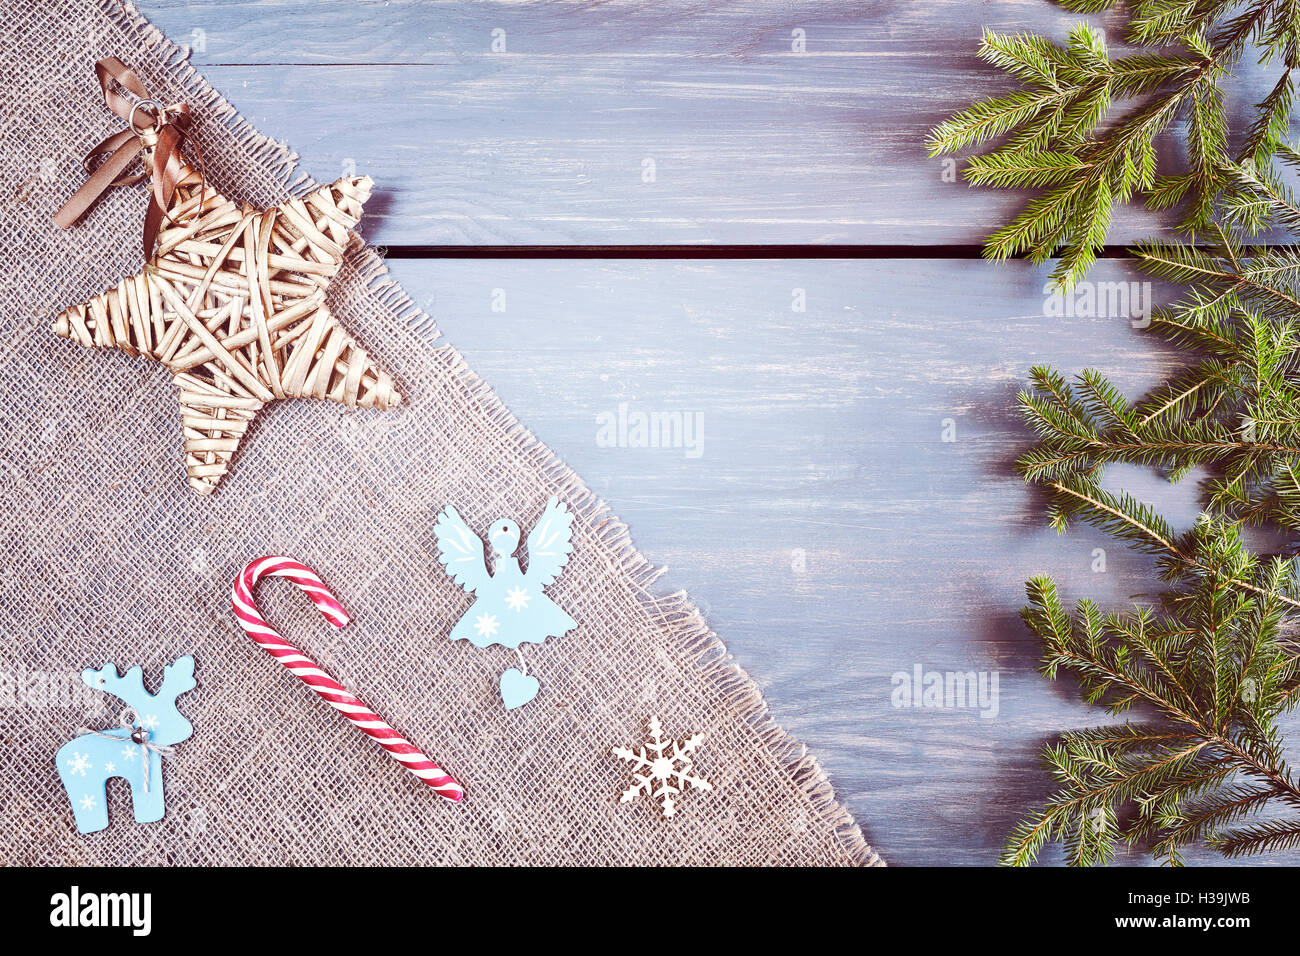 Retro stylized Christmas background, spruce branches with decorations on a rustic wooden table, top view with copy - Stock Image